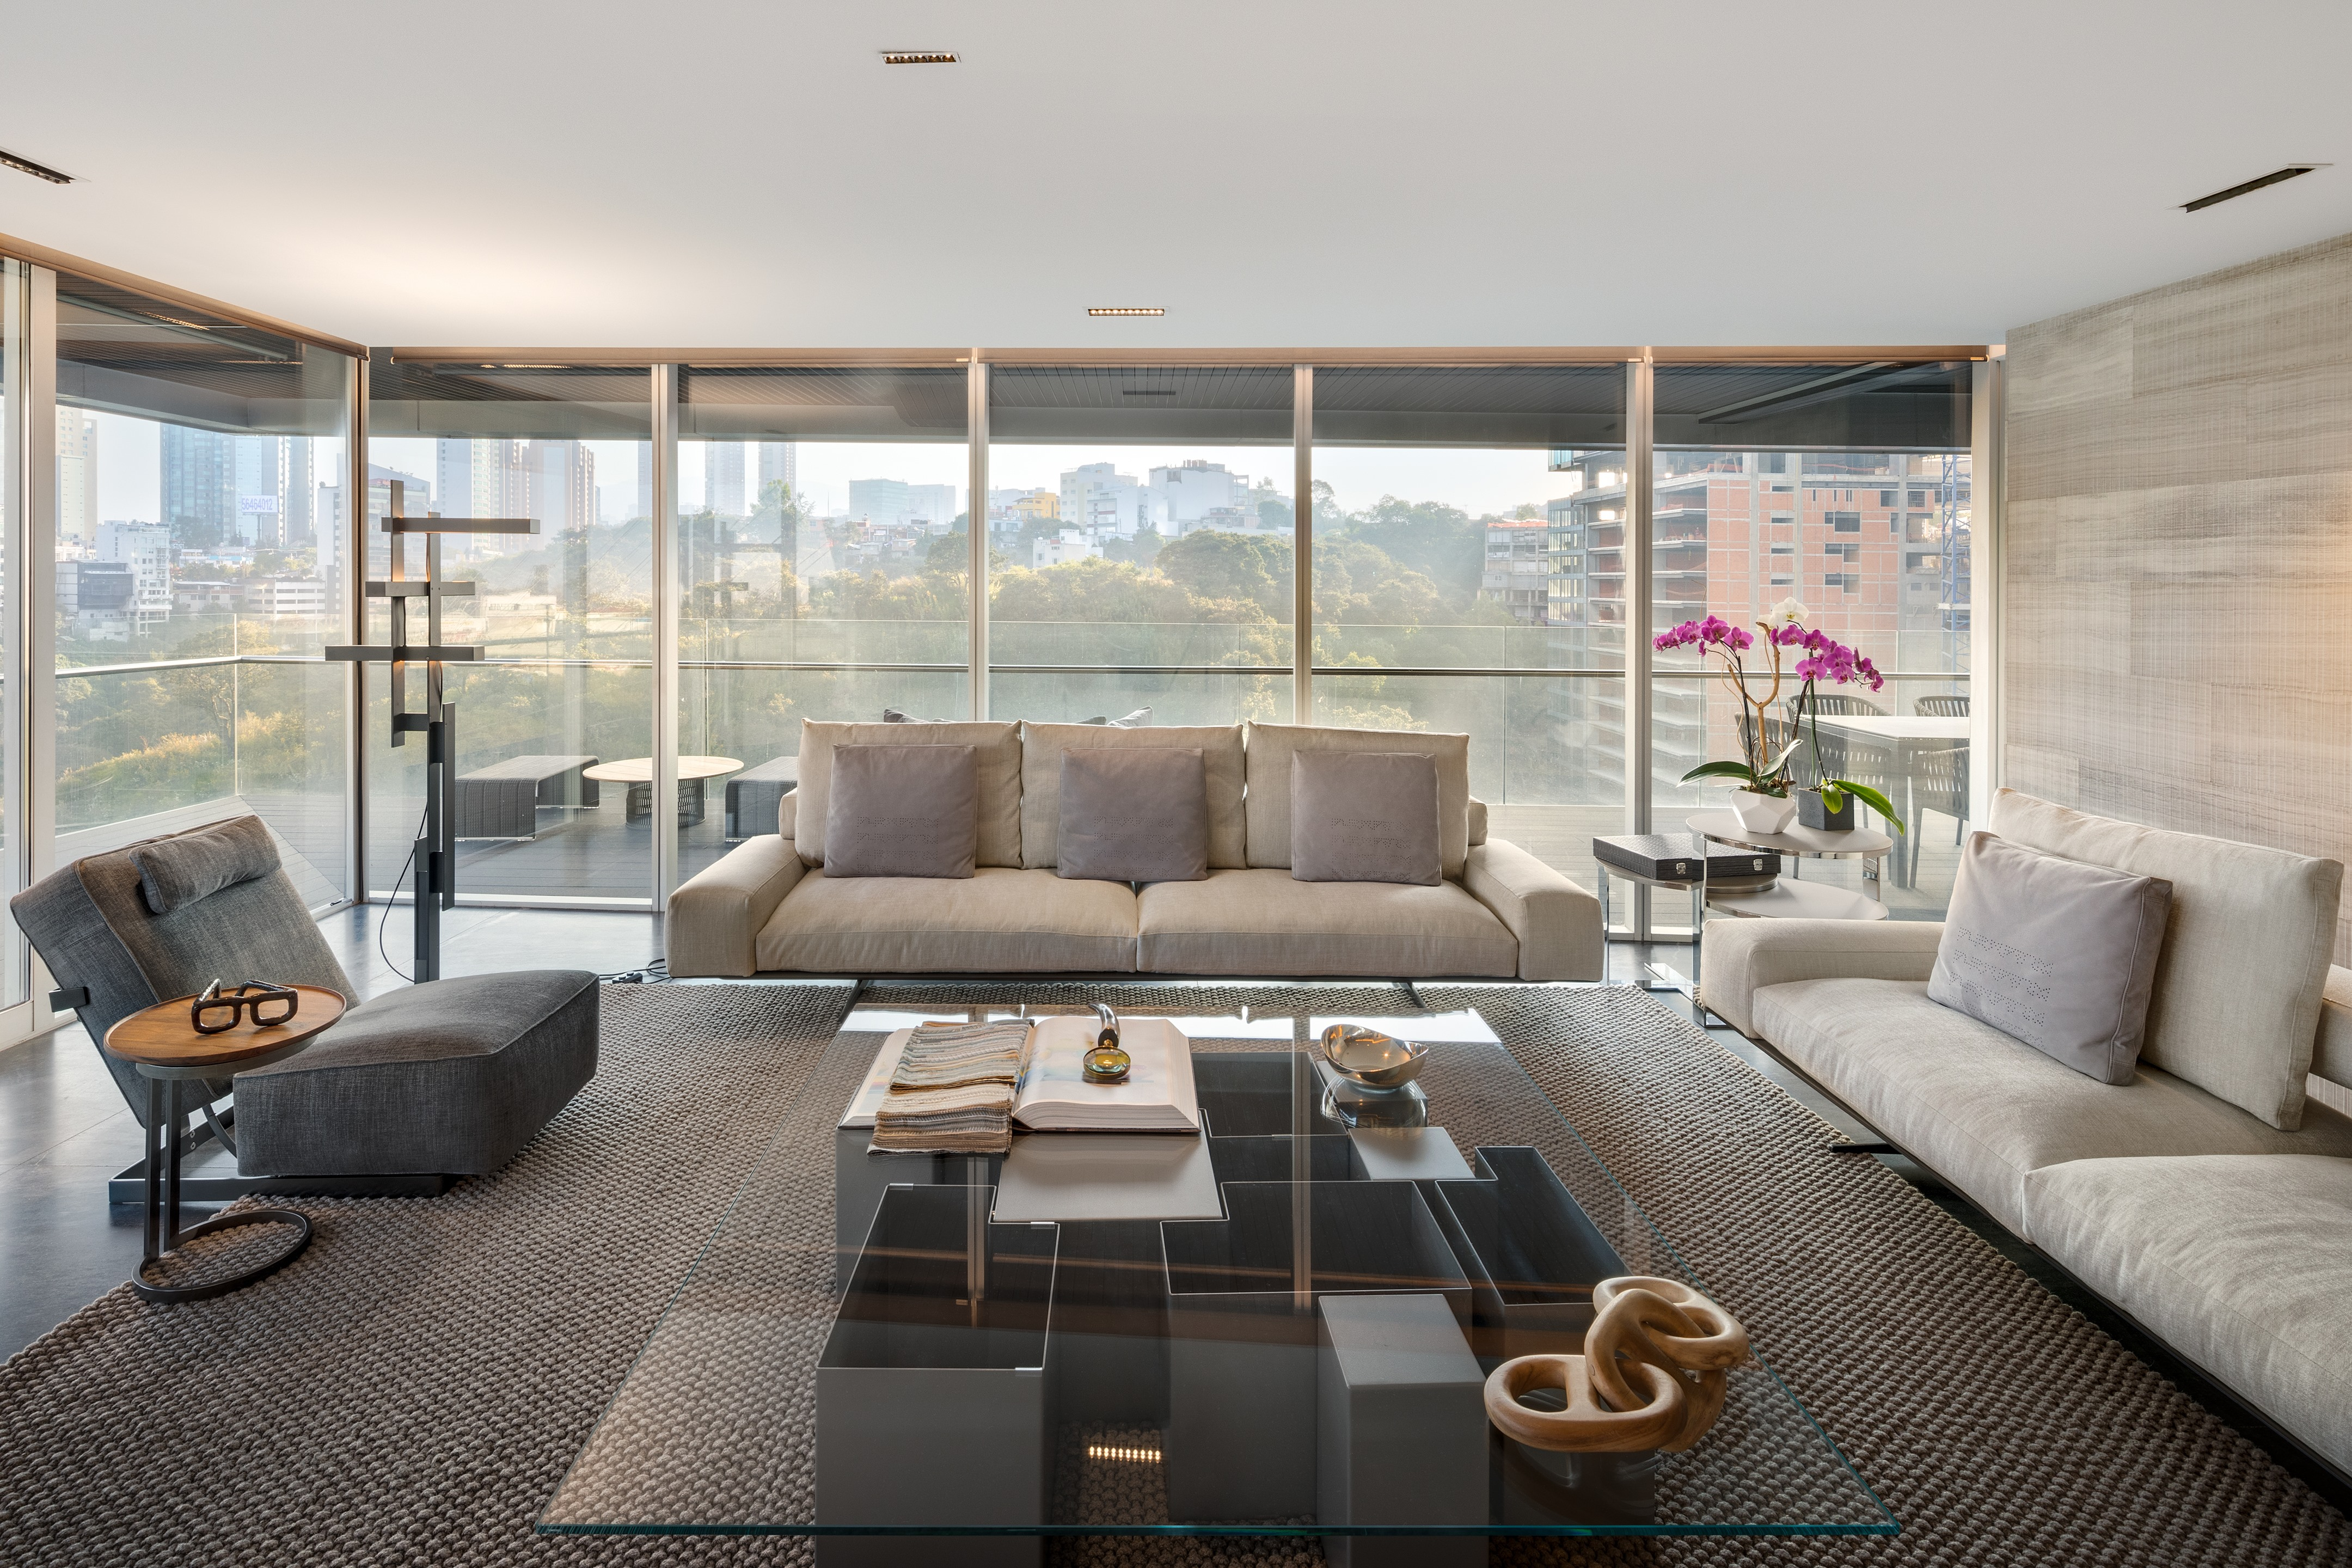 How To Choose The Best Interior Designer For Your Home Project Sohomod Blog